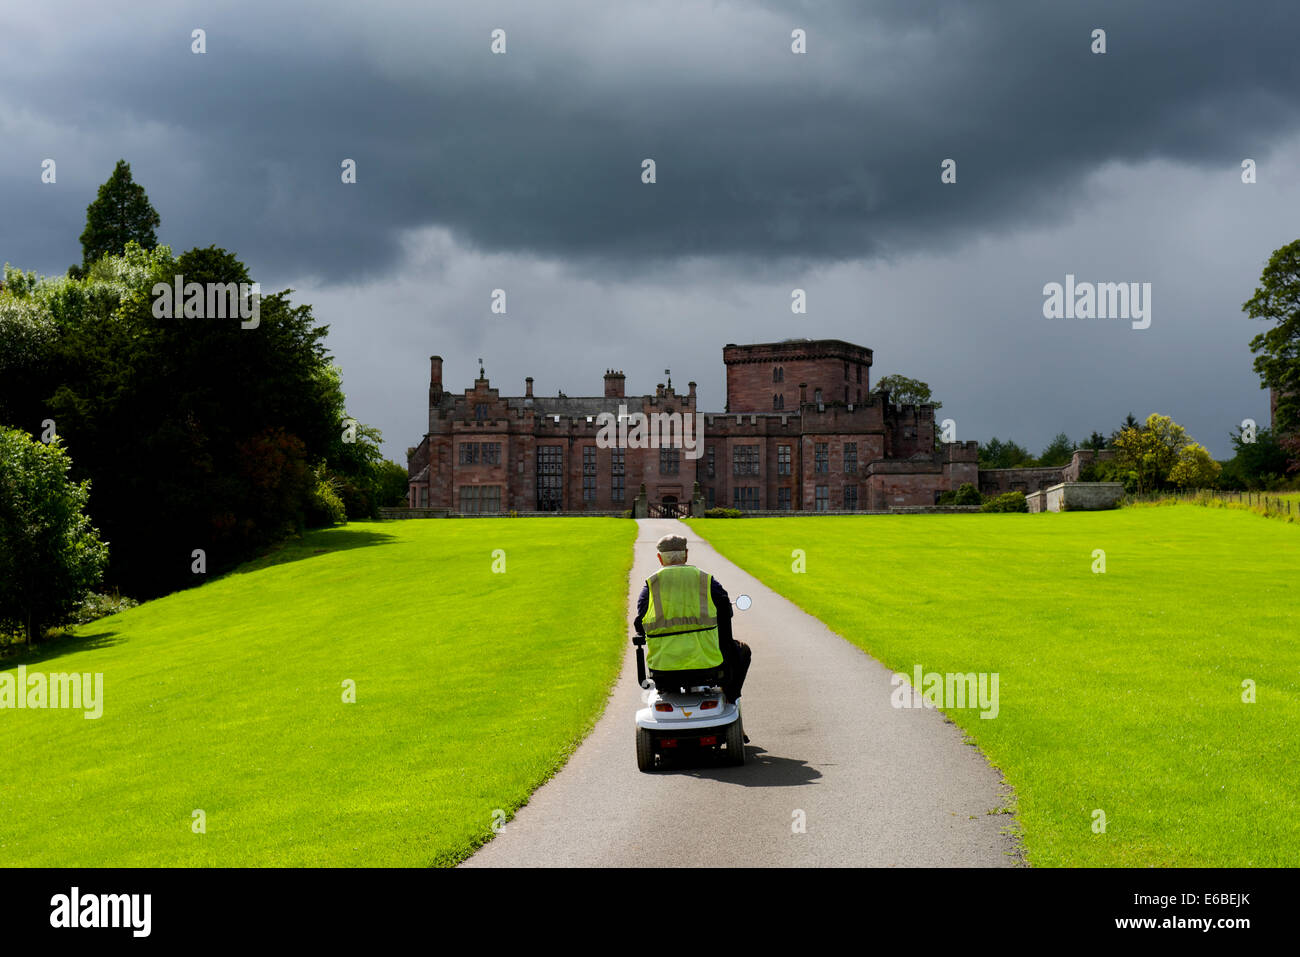 Man on mobility scooter approaching Greystoke Castle, Cumbria, England UK - Stock Image